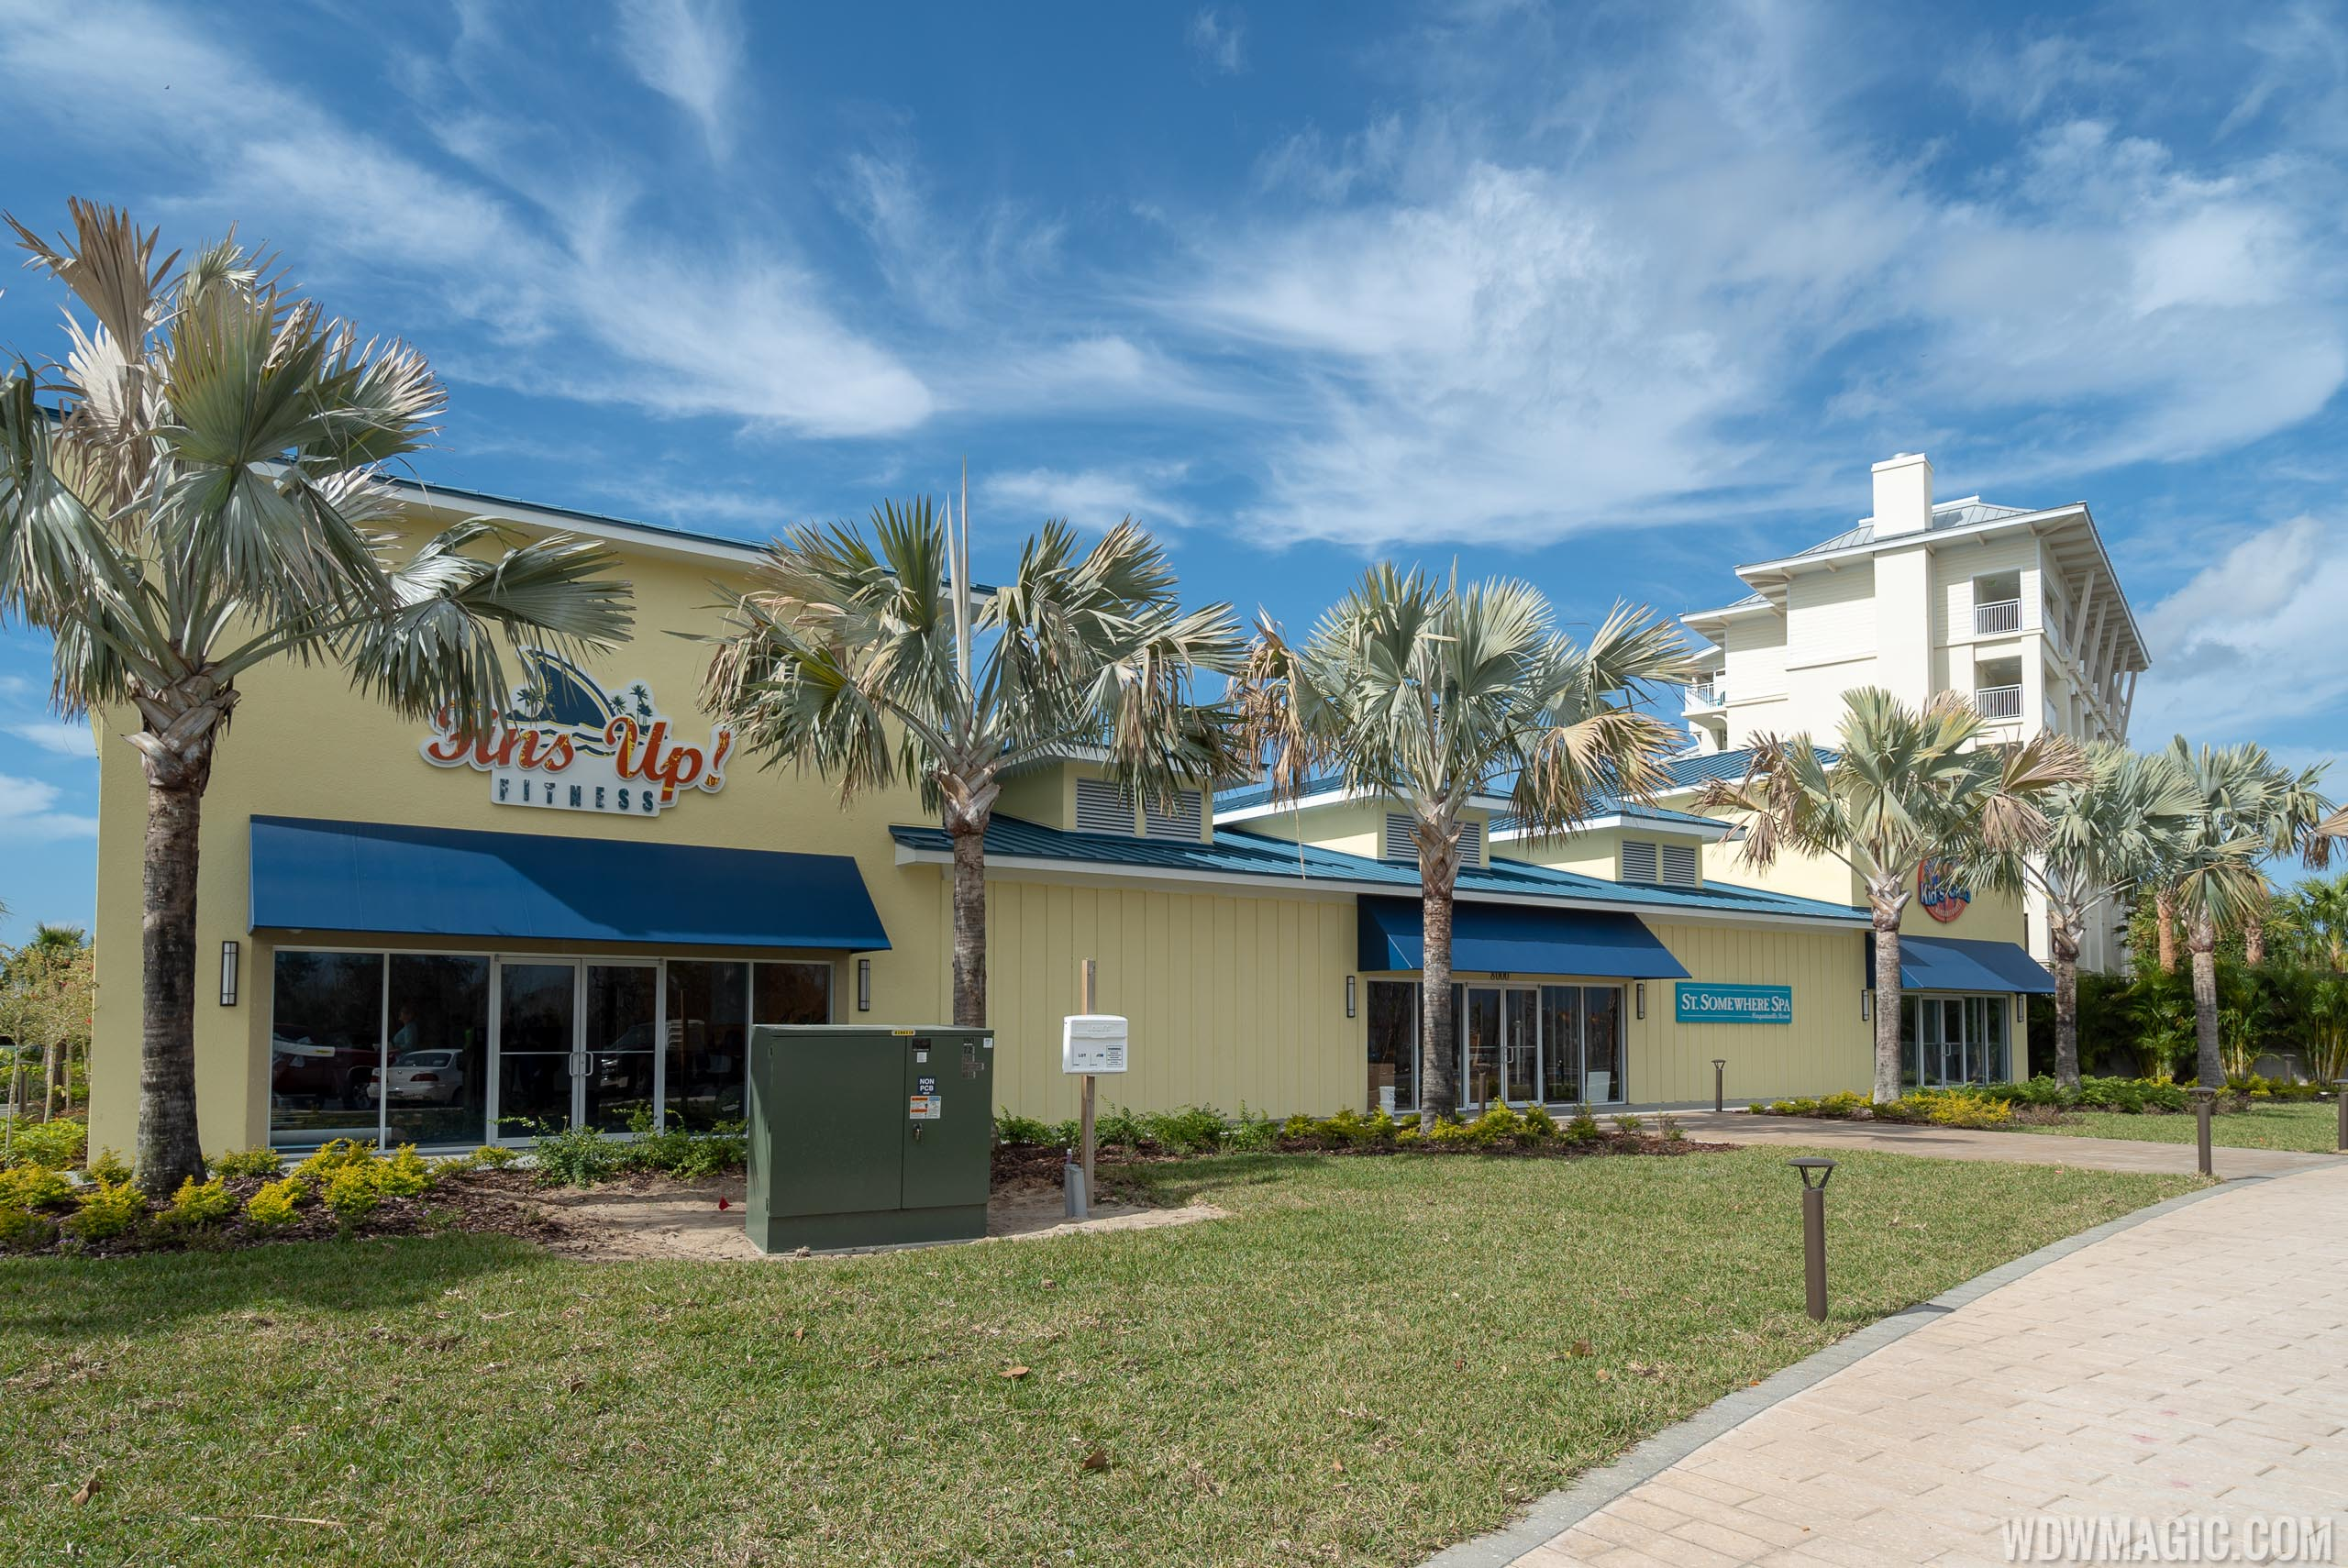 Margaritaville Resort Orlando - Fins Up Fitness